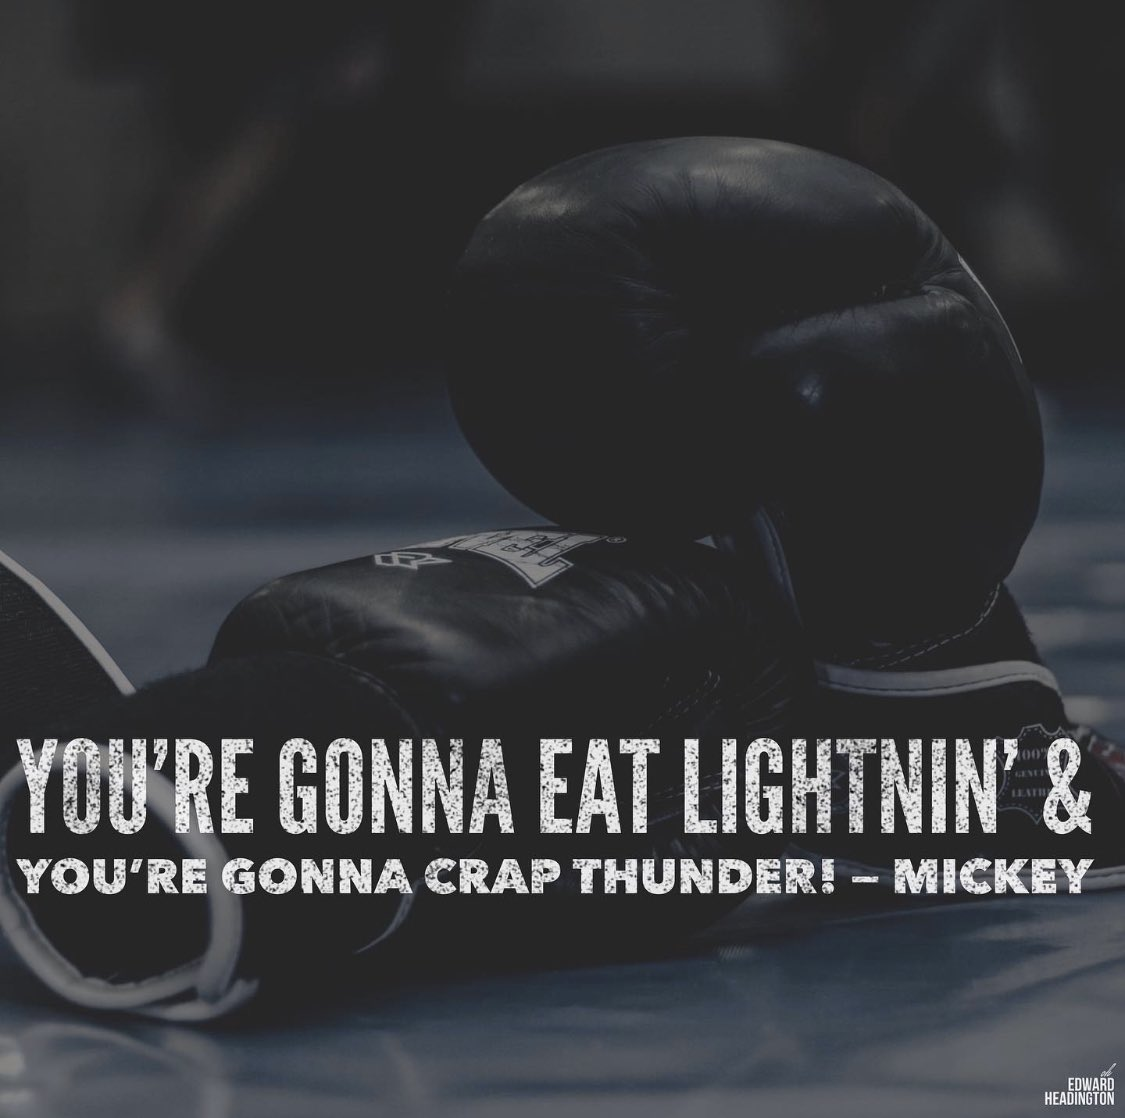 Time to Eat Lightning & Crap Thunder a la Mickey #rocky #rockybalboa #slyvesterstallone #boxing #boxer #sweetscience #film #cinema #philadelphia #philly #actor #oscarwinner #academyawards #quote #quotes #moviequotes #moviequote #70s #1970s #70smovies #burgessmeredithpic.twitter.com/WaNDDu0NH0